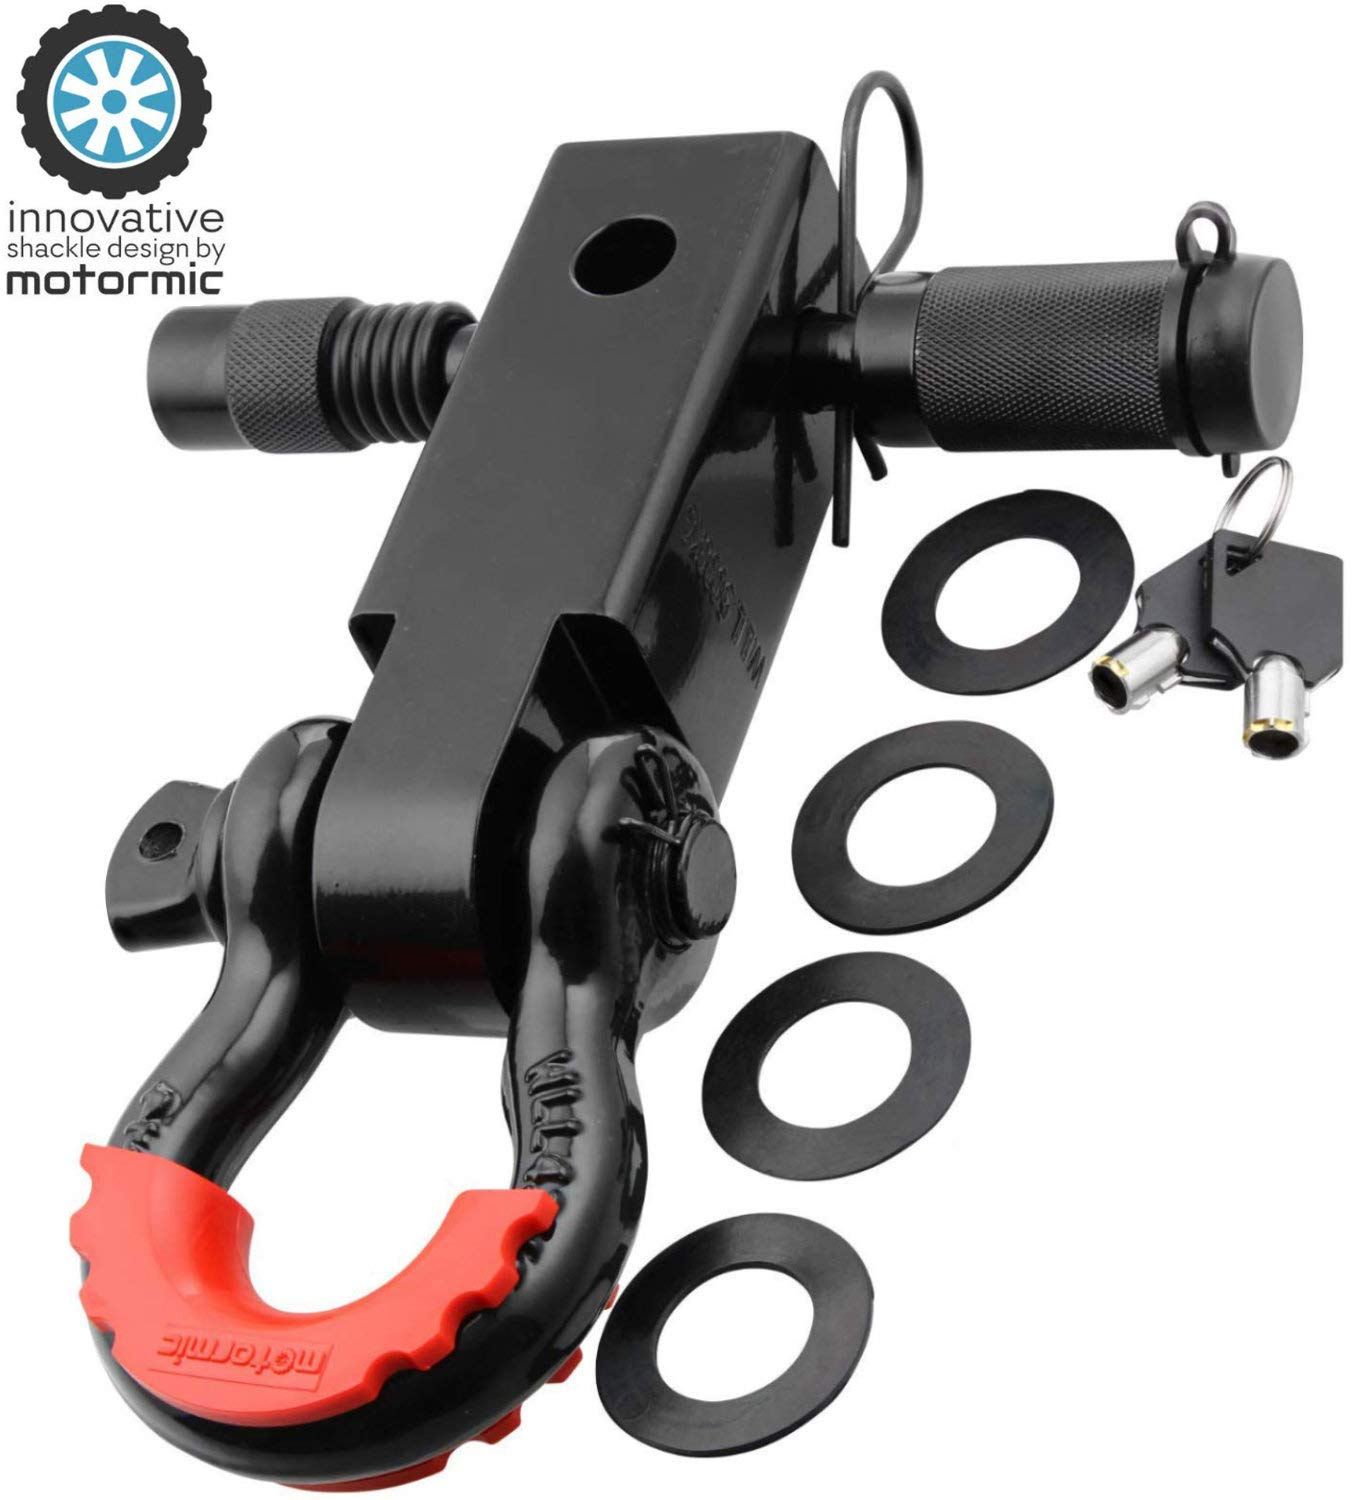 motormic Shackle Hitch Receiver 2'' + 5/8'' Trailer Lock Pin and 3/4'' D Shackle (35,000 lbs Max Capacity) - Heavy Duty Off Road Recovery Black D Ring with 4 washers + Red Isolator for Jeep Towing by motormic